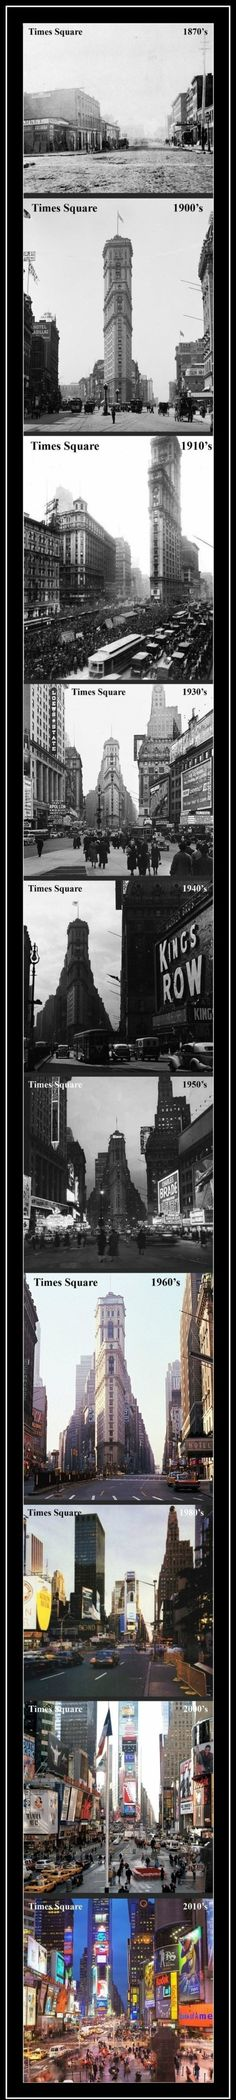 Times Square Over The Years. This is pretty neat!